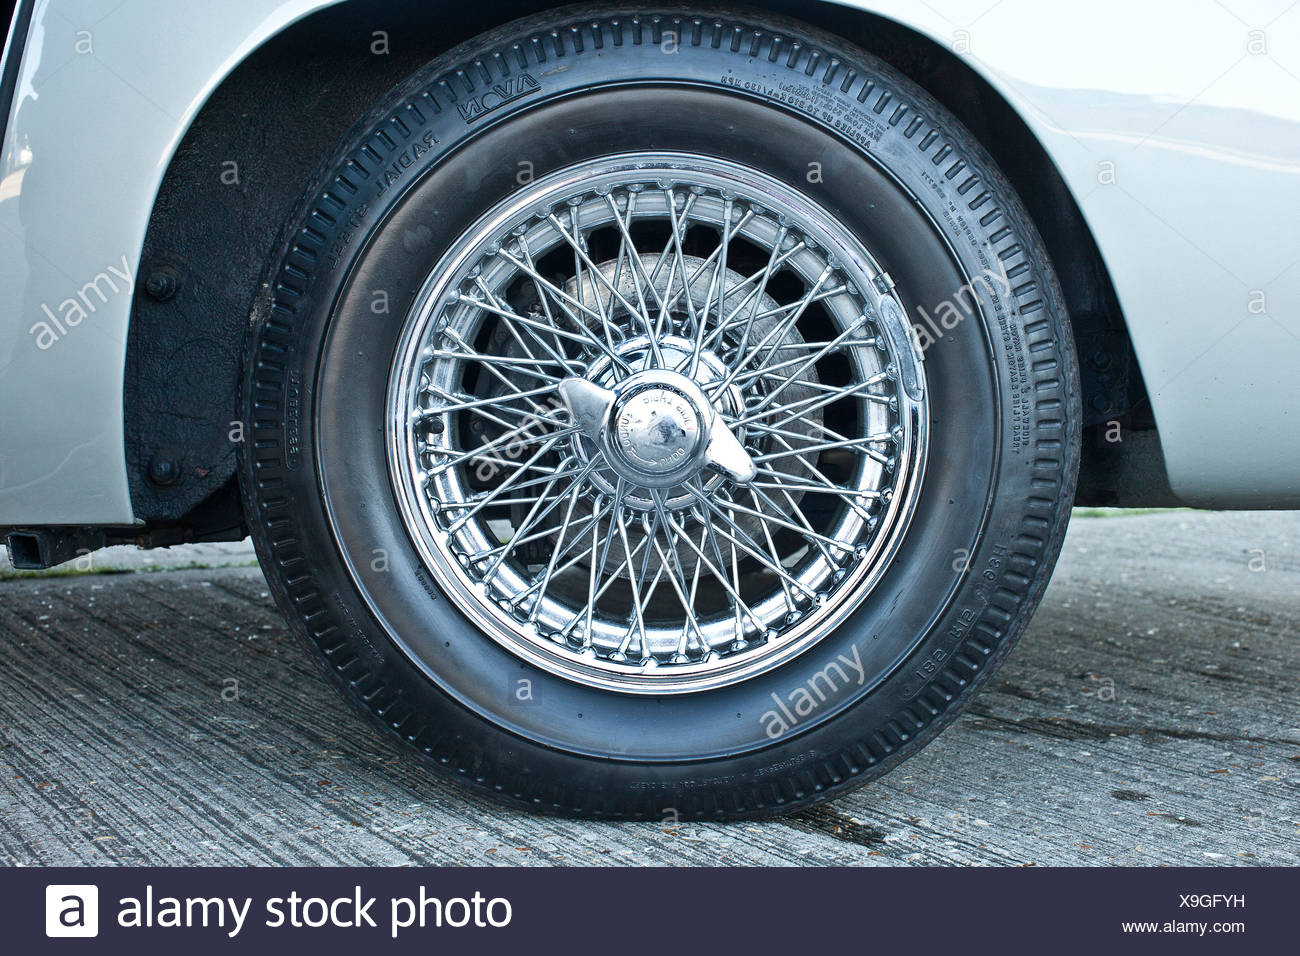 Tyre of Aston Martin DB5, James Bond classic car - Stock Image